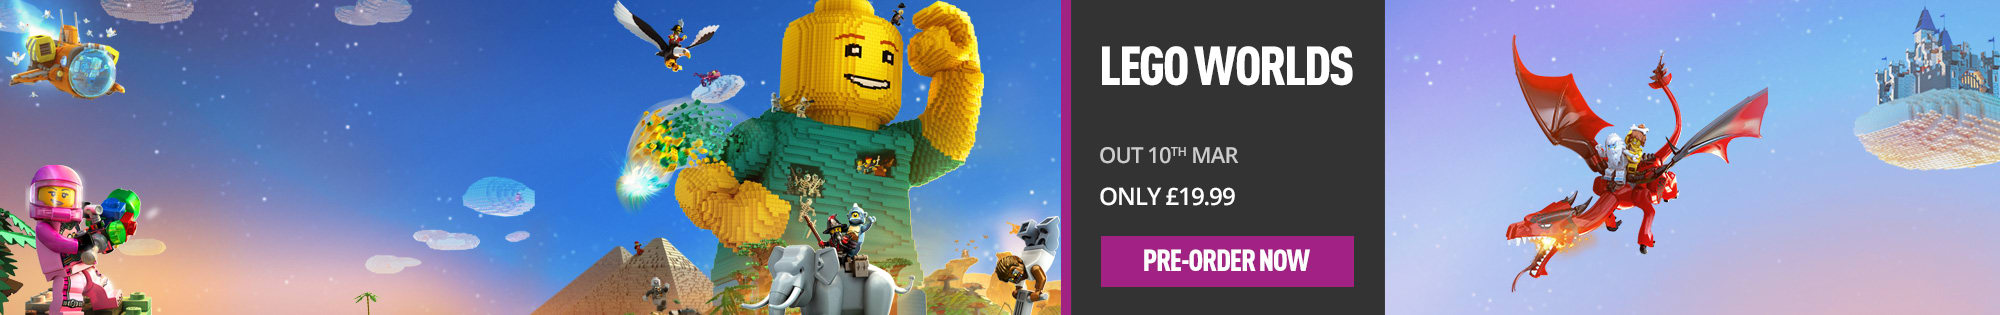 LEGO Worlds for Playstation 4 and Xbox One